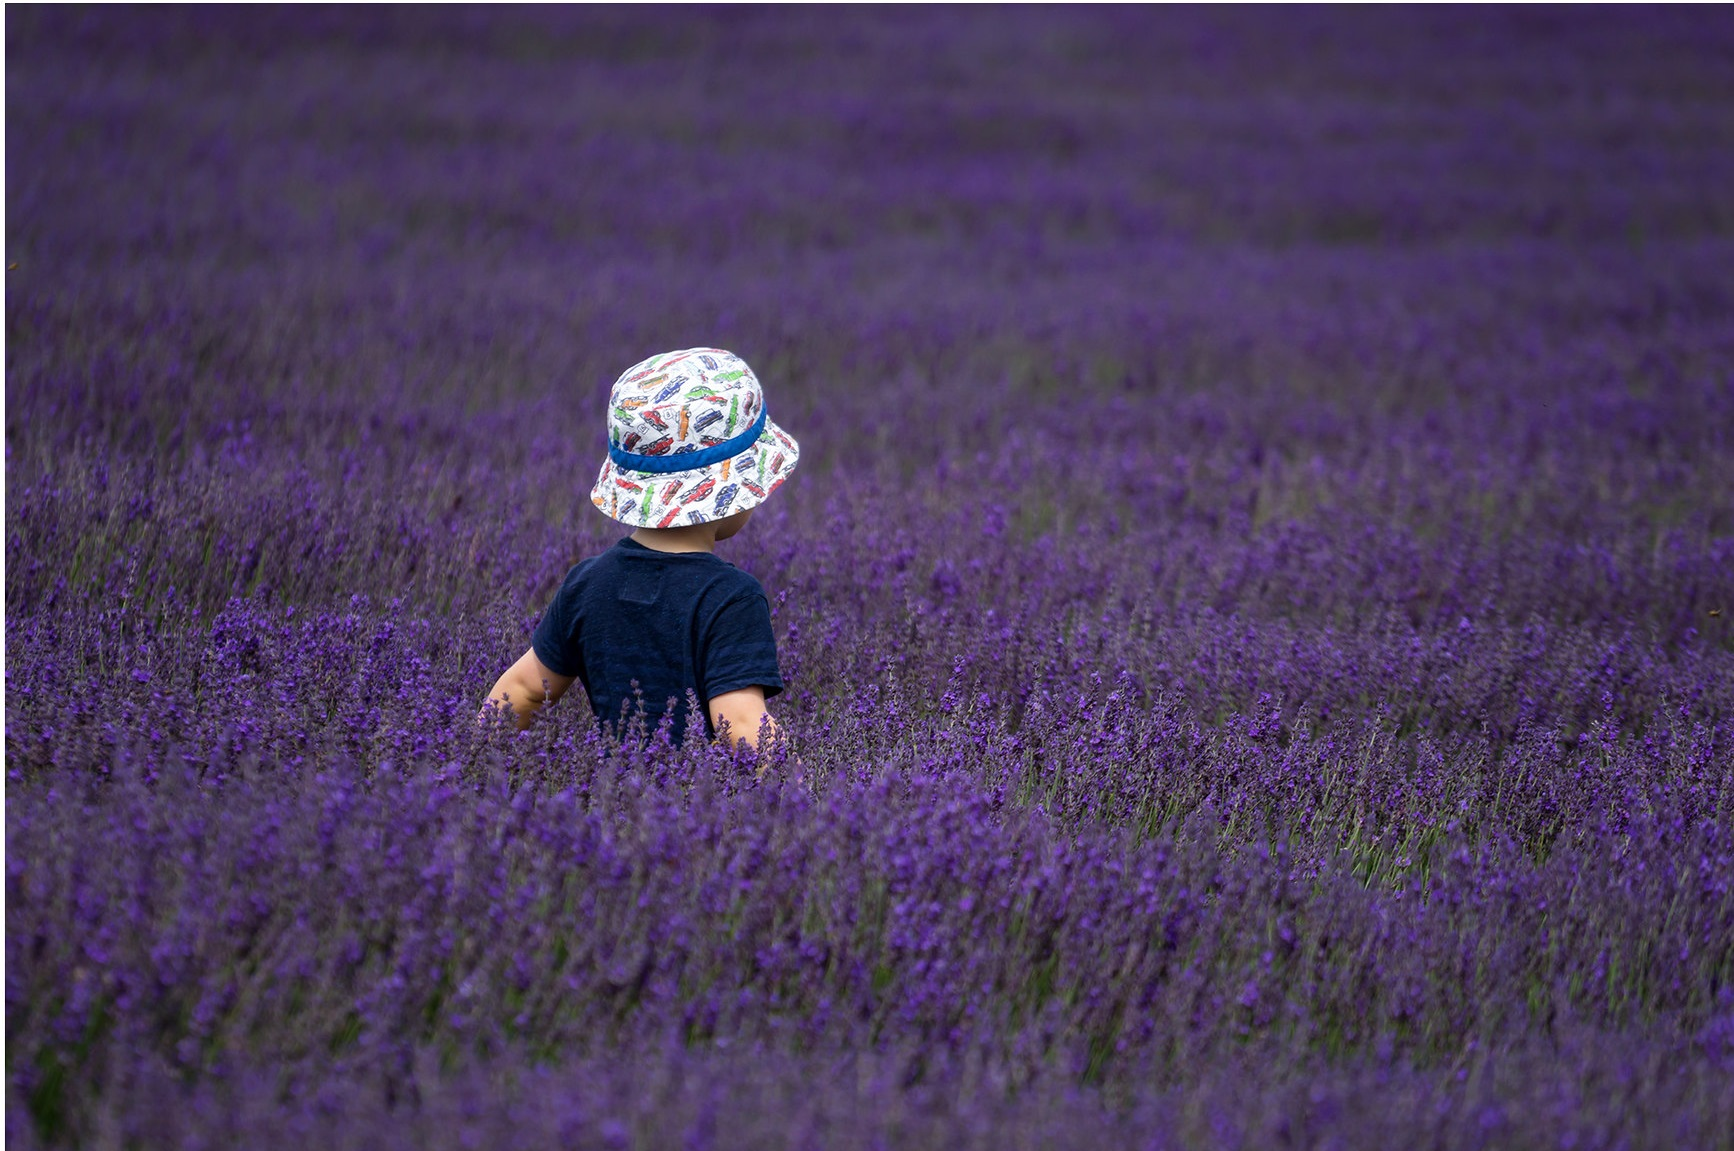 Photo showing a young child wearing a t-shirt and sunhat sitting in a field of lavender